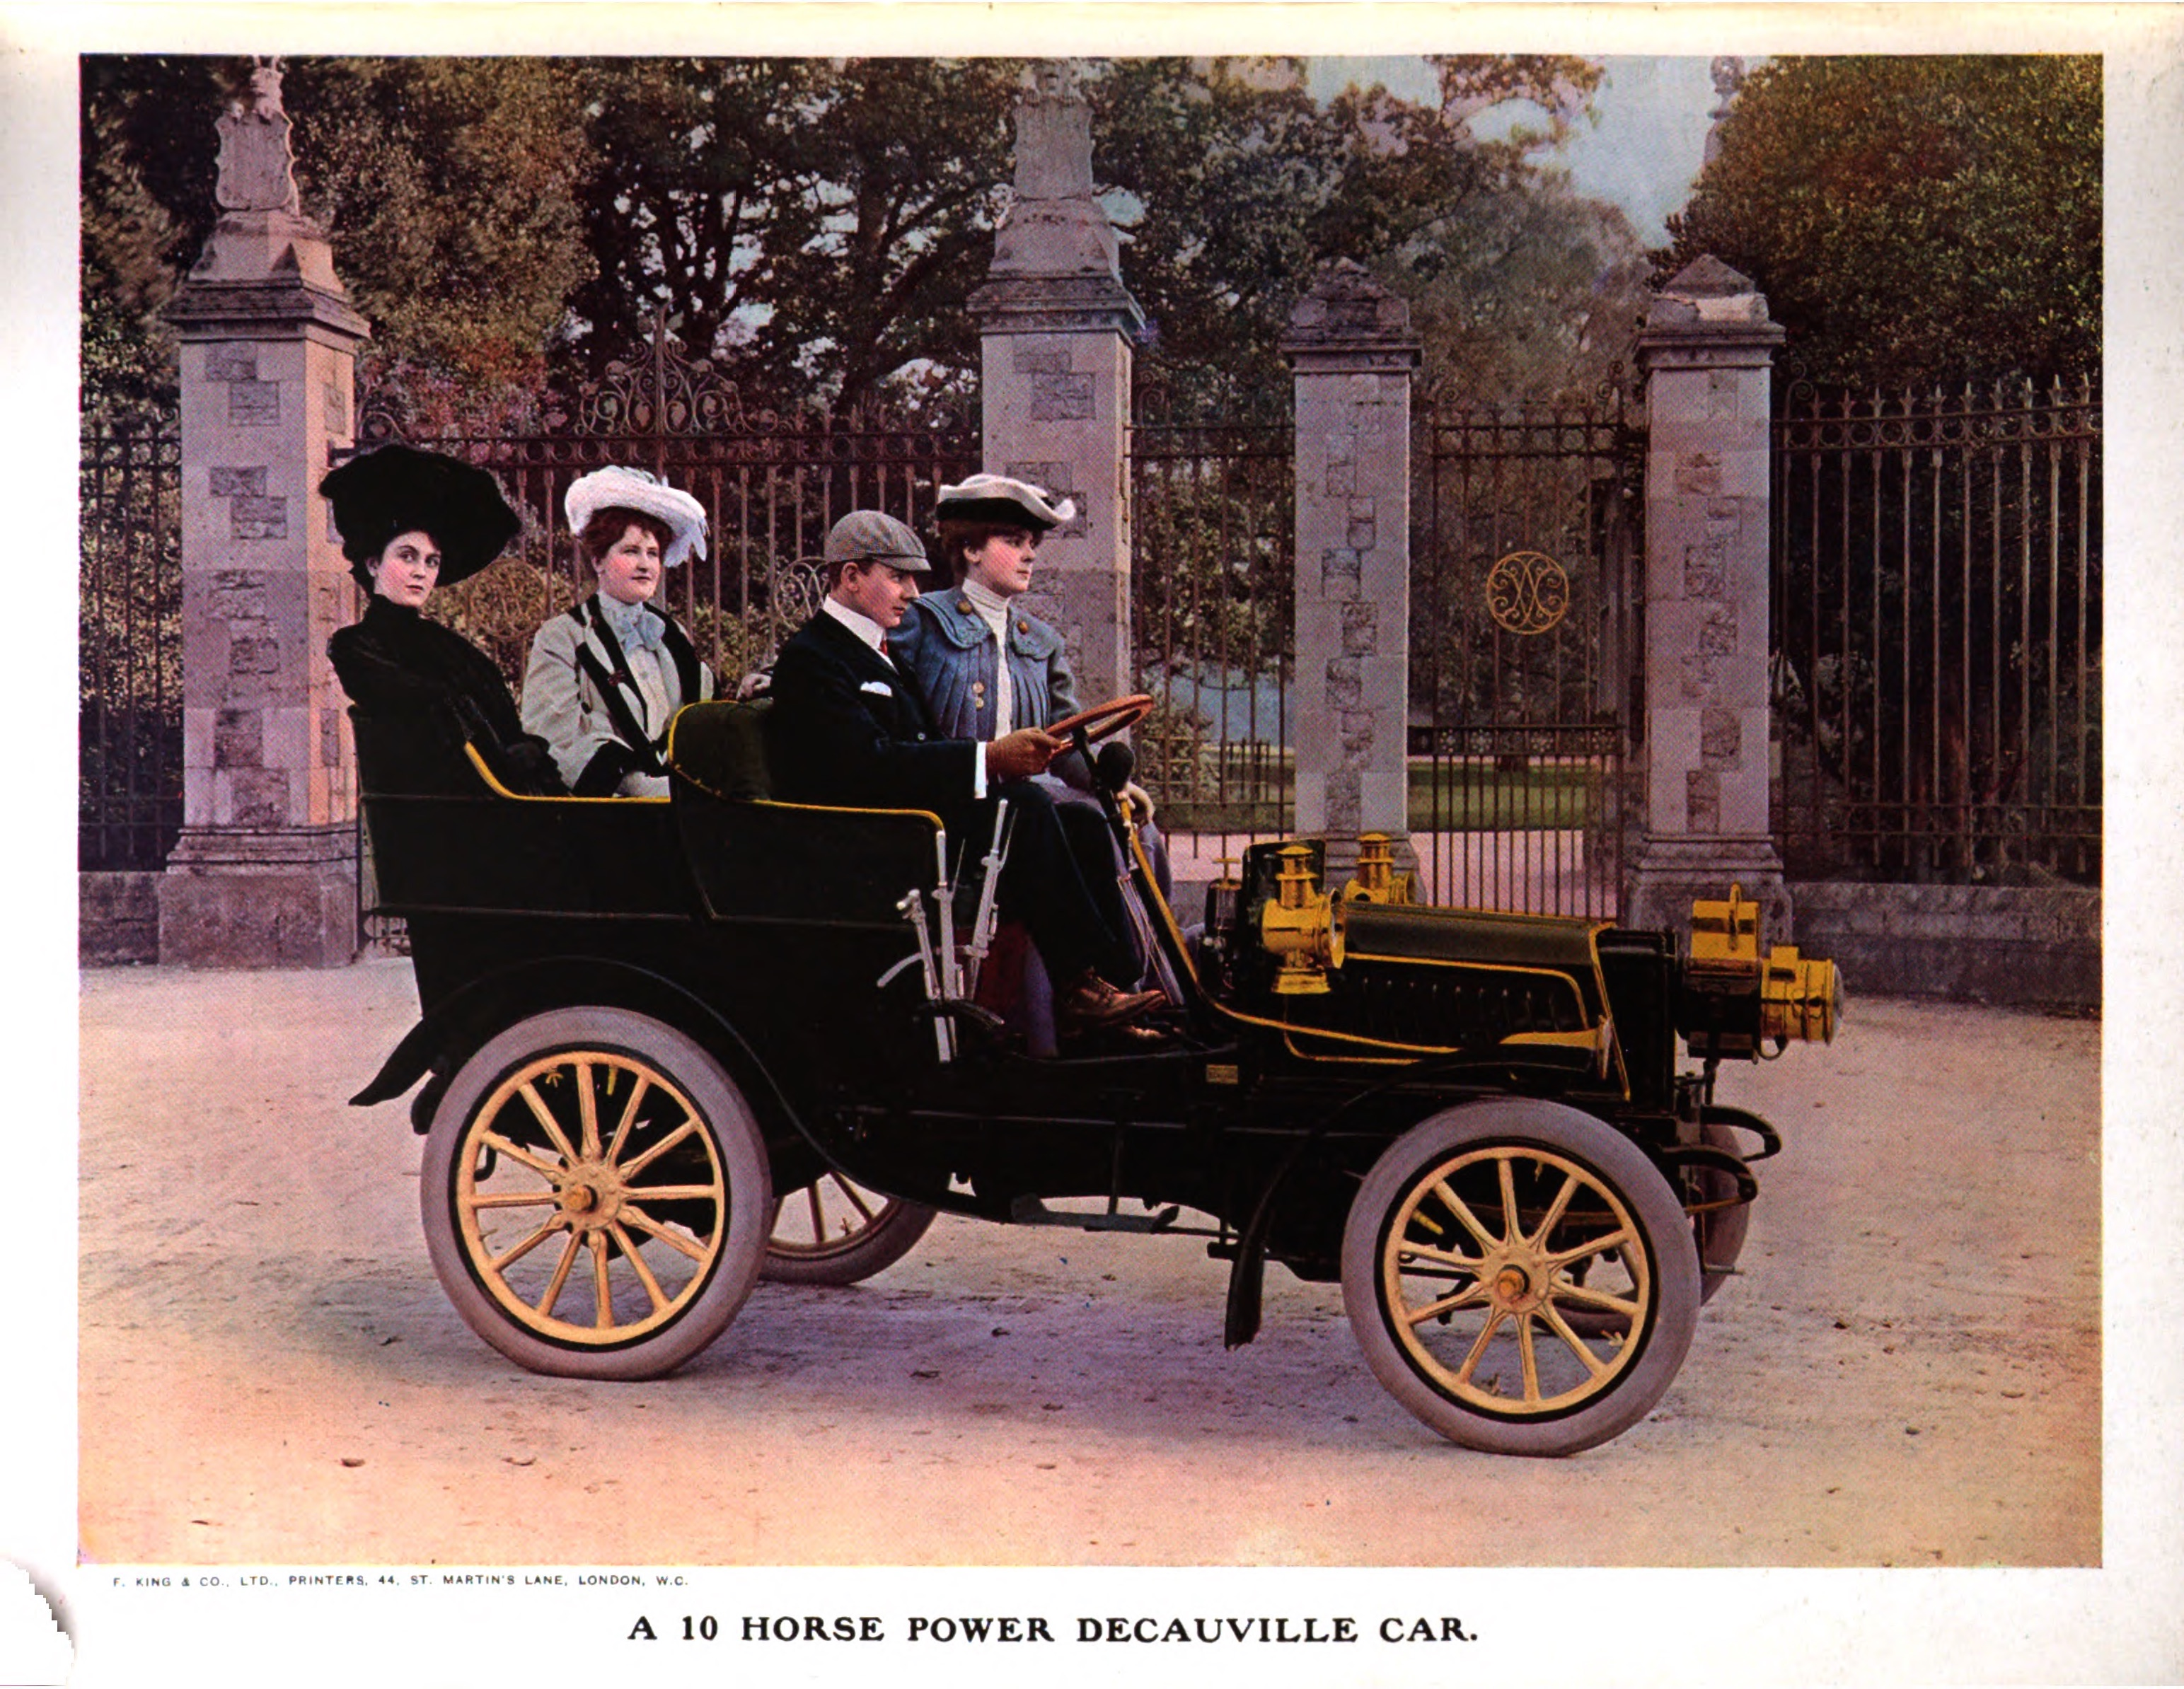 Decauville_10_horsepower_car_1903